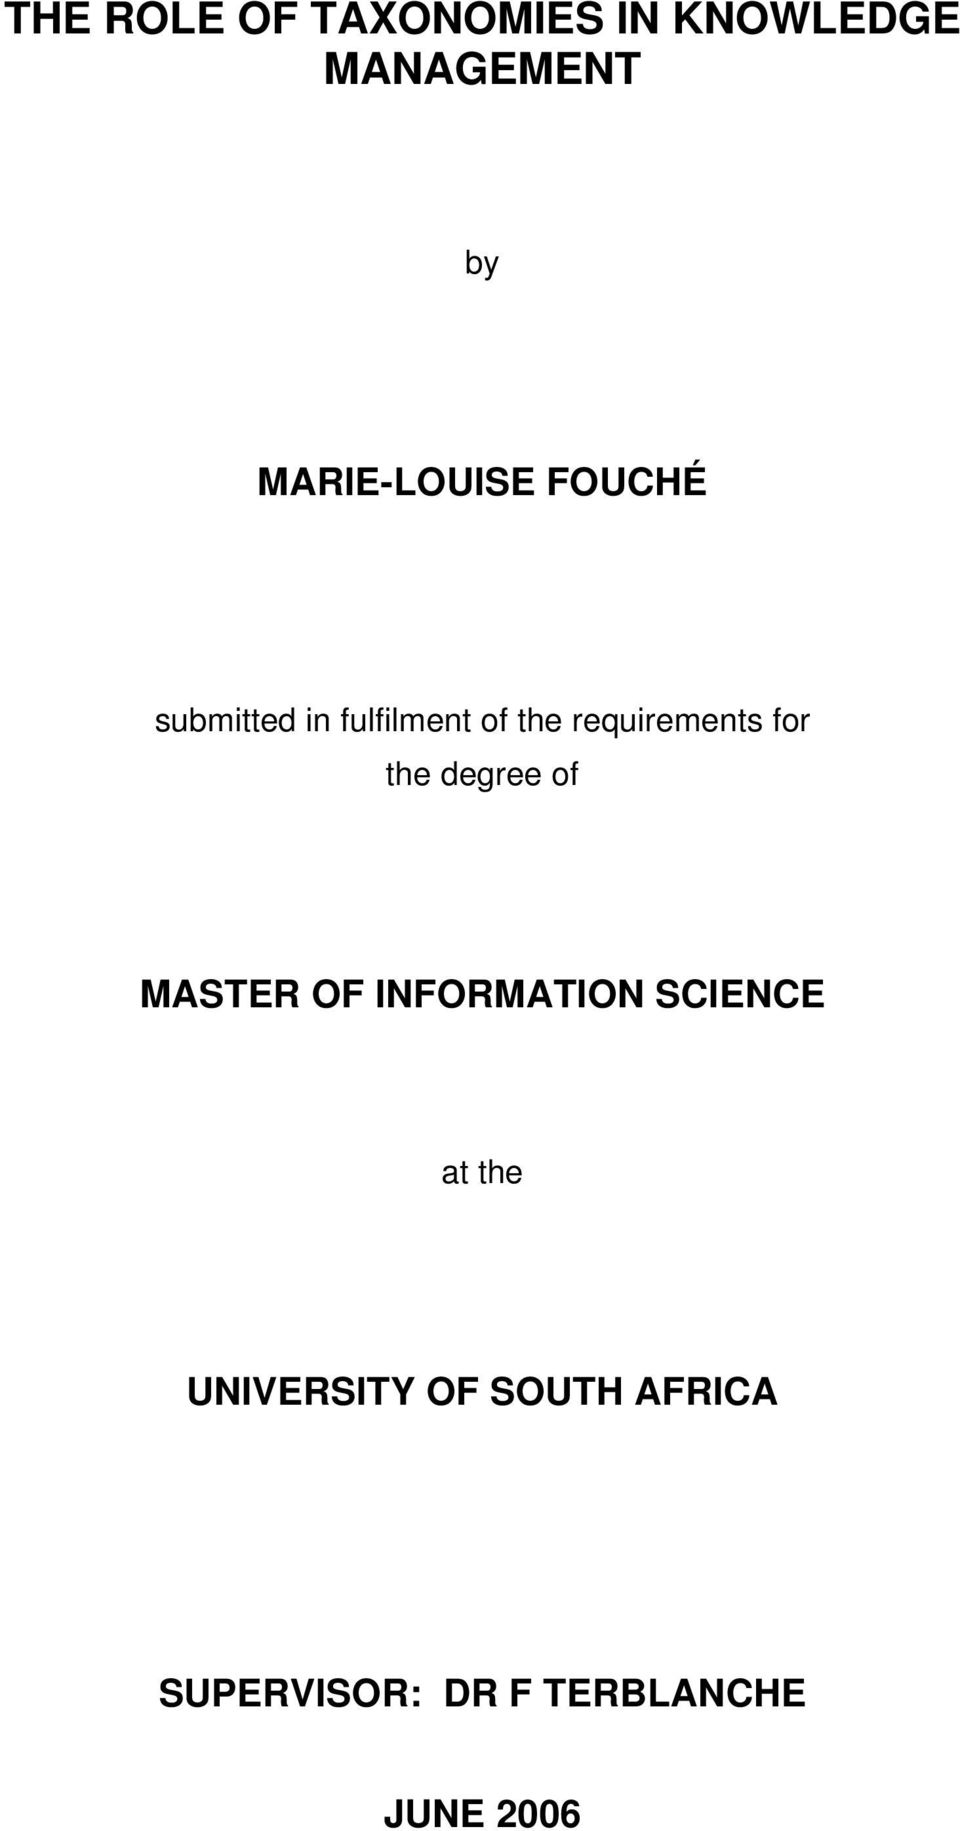 requirements for the degree of MASTER OF INFORMATION